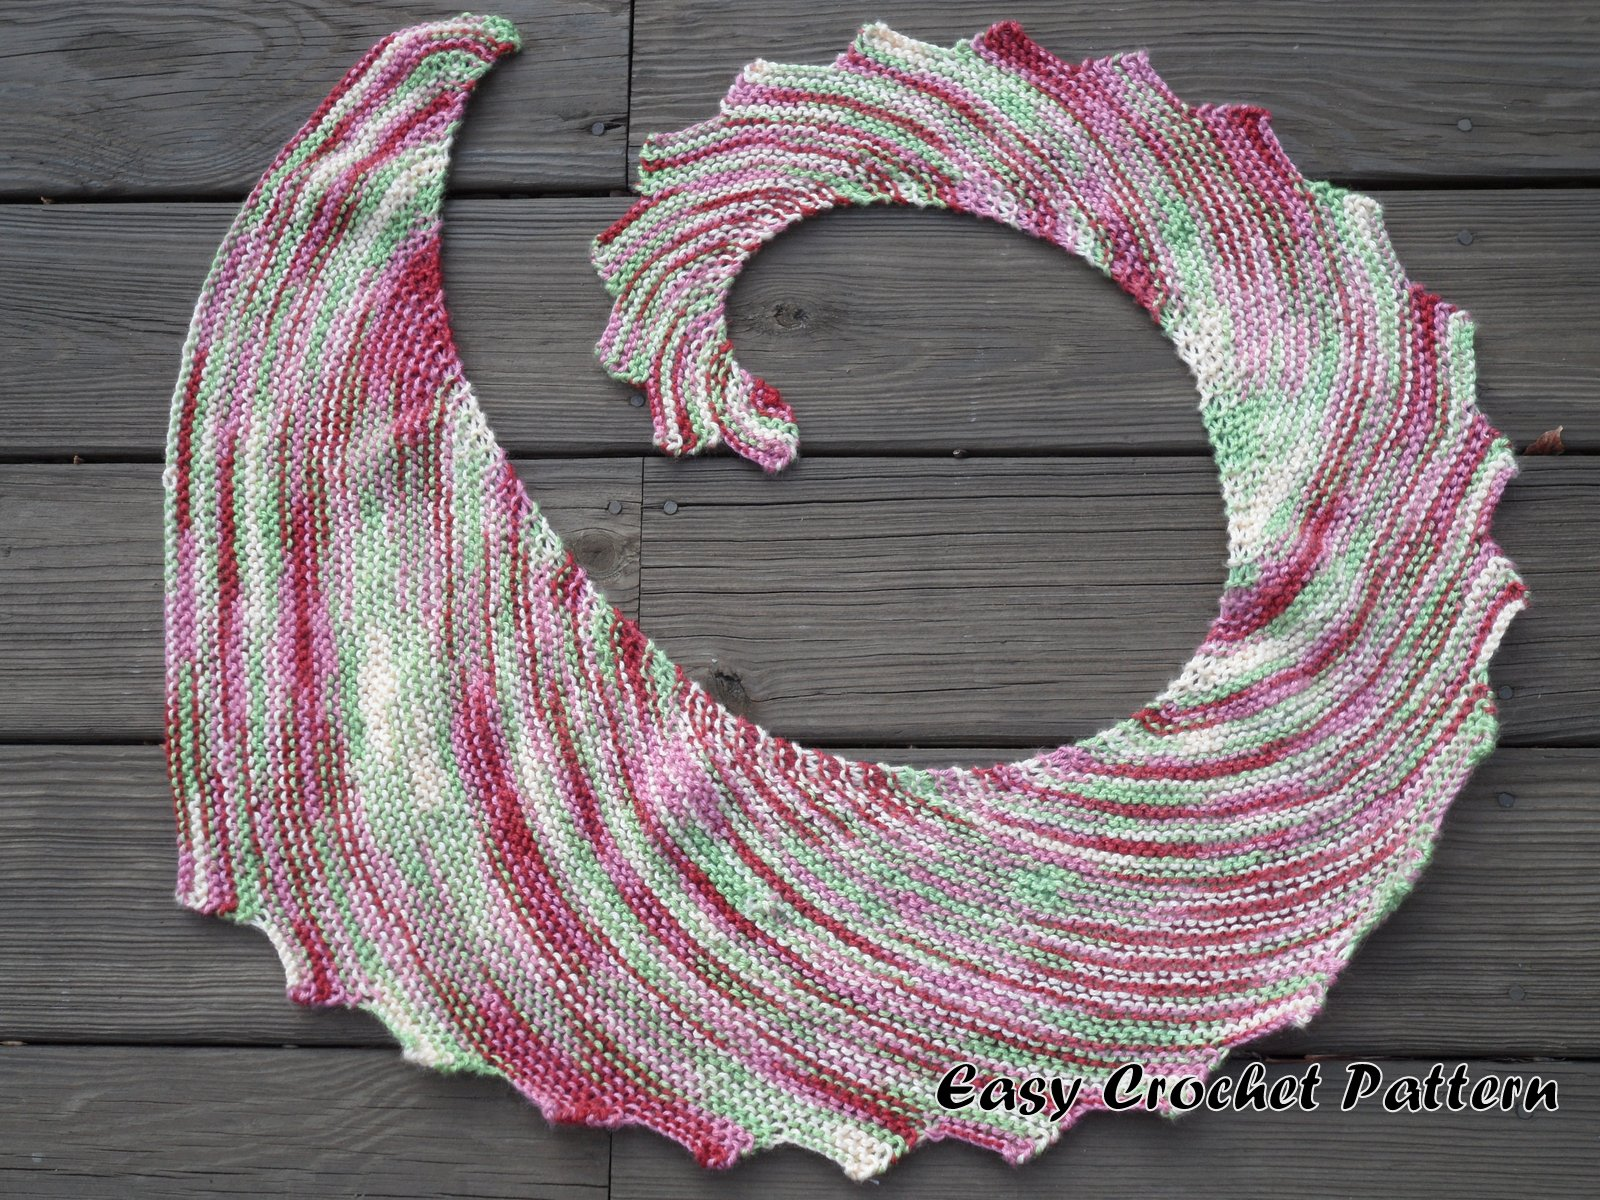 Easy Crochet Pattern: Another Dragons Tail Scarf